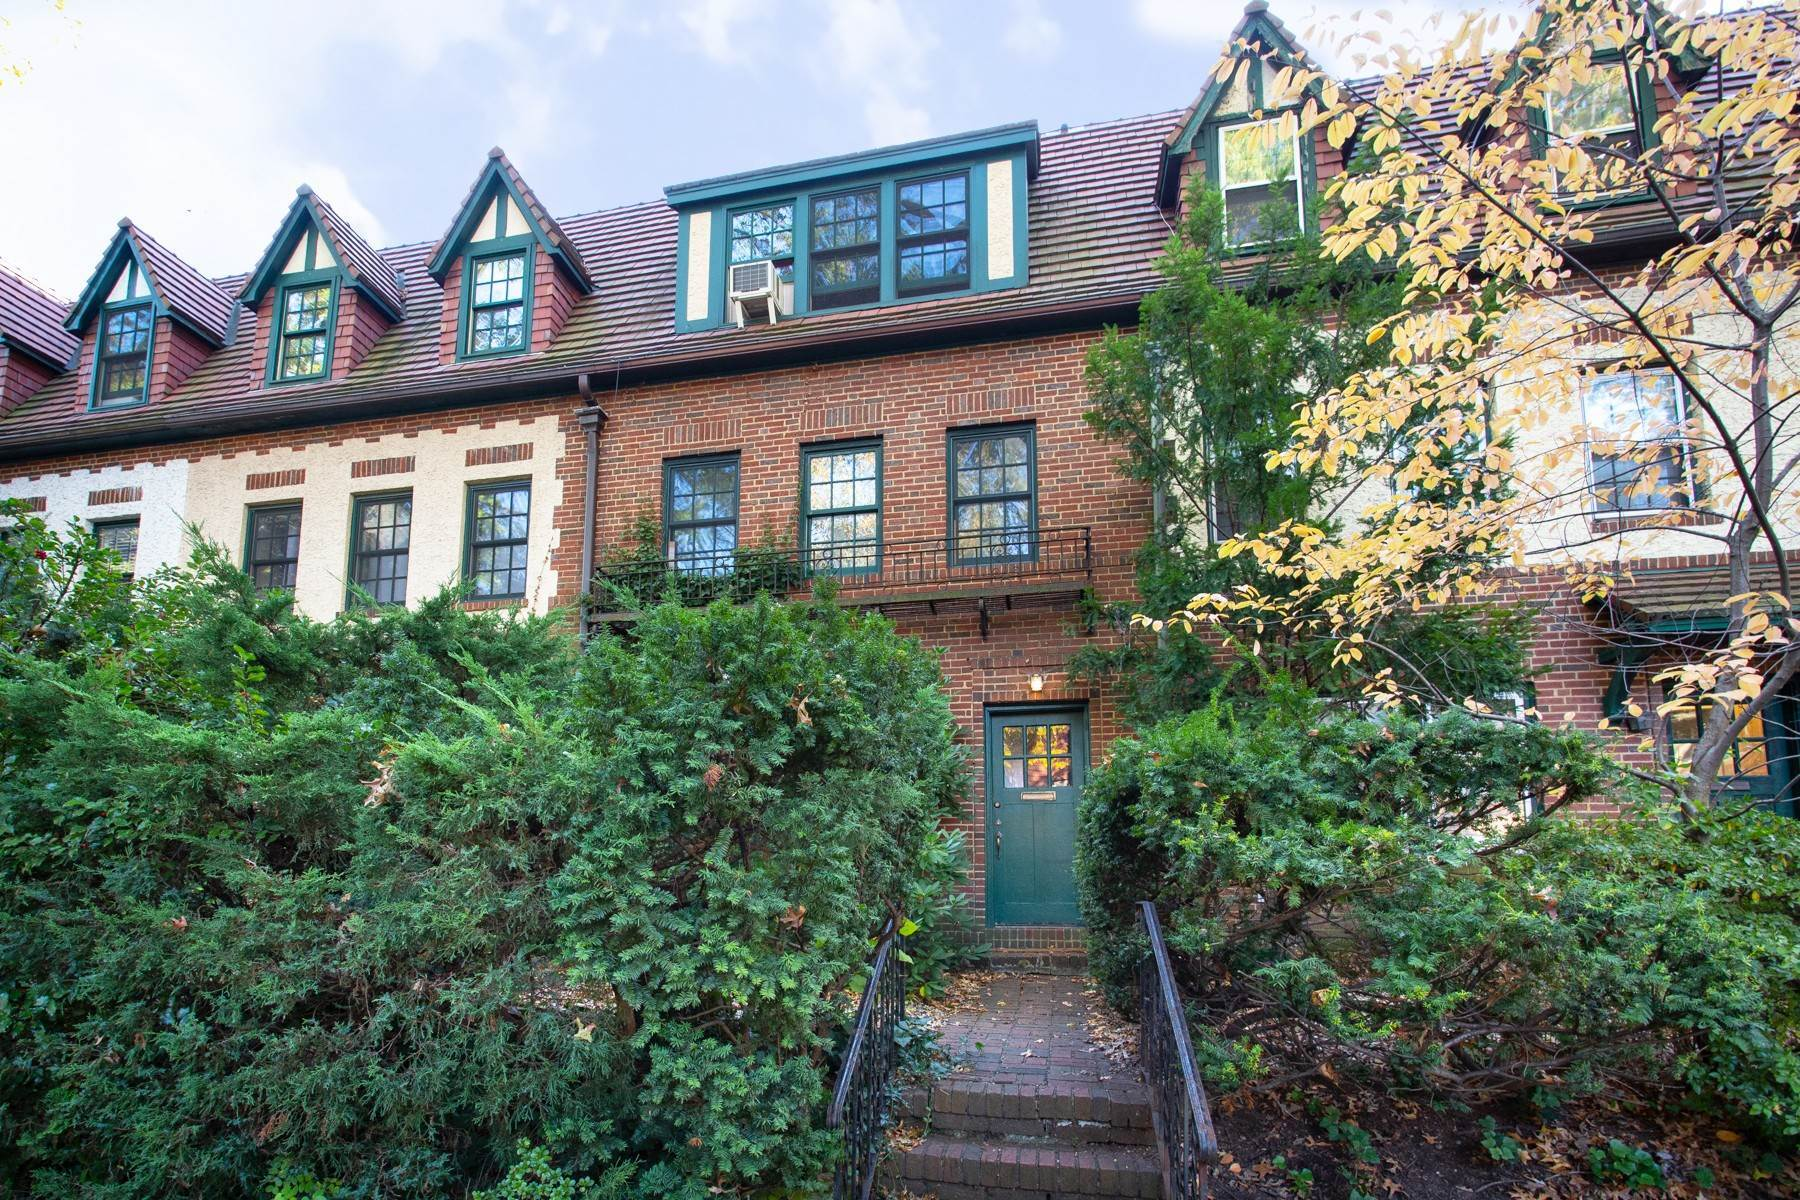 townhouses for Sale at 'SPECTACULAR 2 FAMILY BRICK TOWNHOUSE STEPS FROM HAWTHORNE PARK' 219 Burns Street, Forest Hills Gardens, Forest Hills, New York 11375 United States